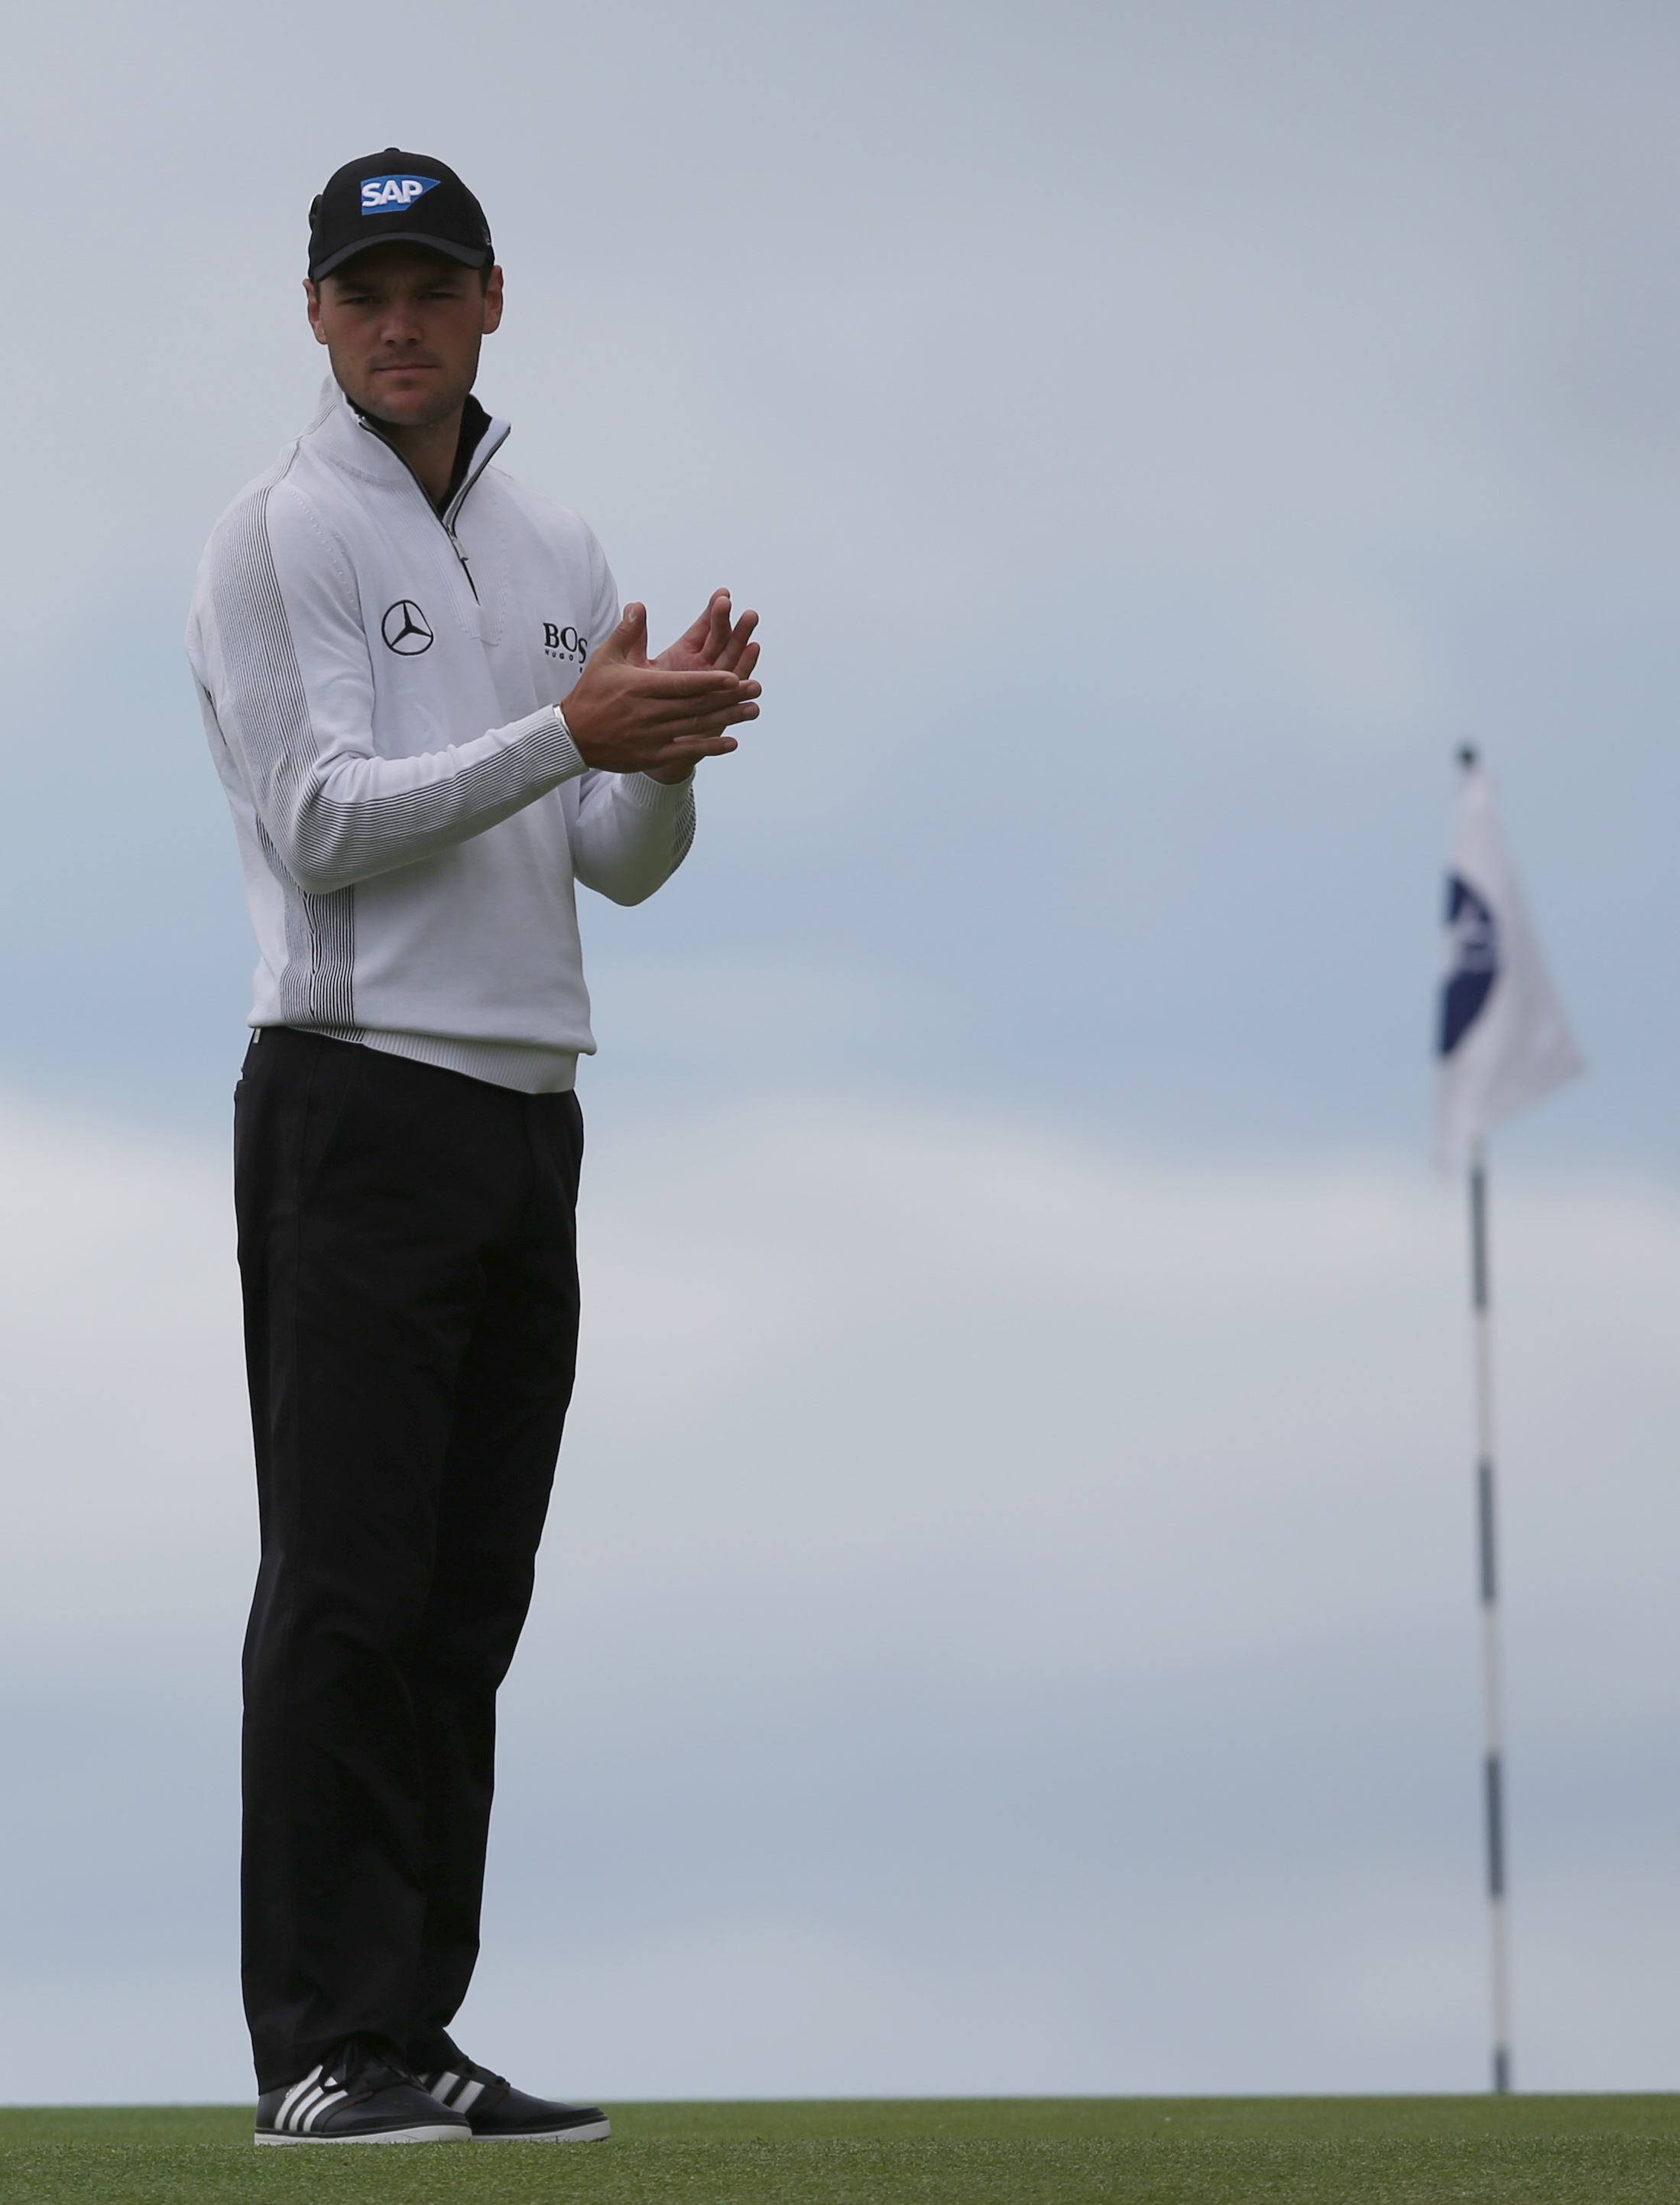 Martin Kaymer of Germany waits to putt on the 13th green during a practice round ahead of the British Open Golf championship at the Royal Liverpool golf club, Hoylake, England, Wednesday July 16, 2014. The British Open Golf championship starts Thursday July 17